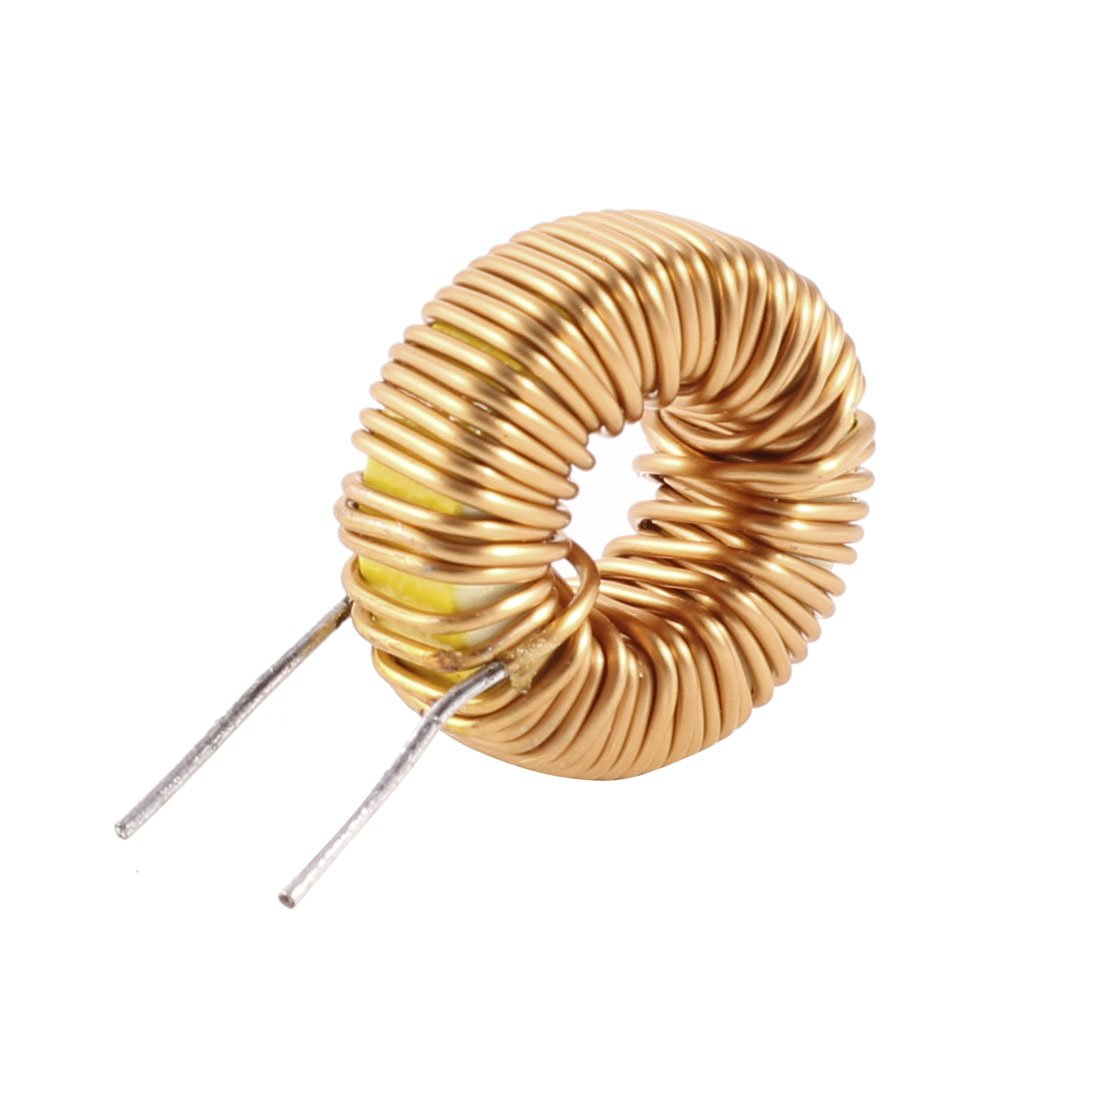 Uxcell a13071500ux0195 Toroid Core Inductor Wire Wind Wound 150uH 42mOhm 5 Amp, Coil